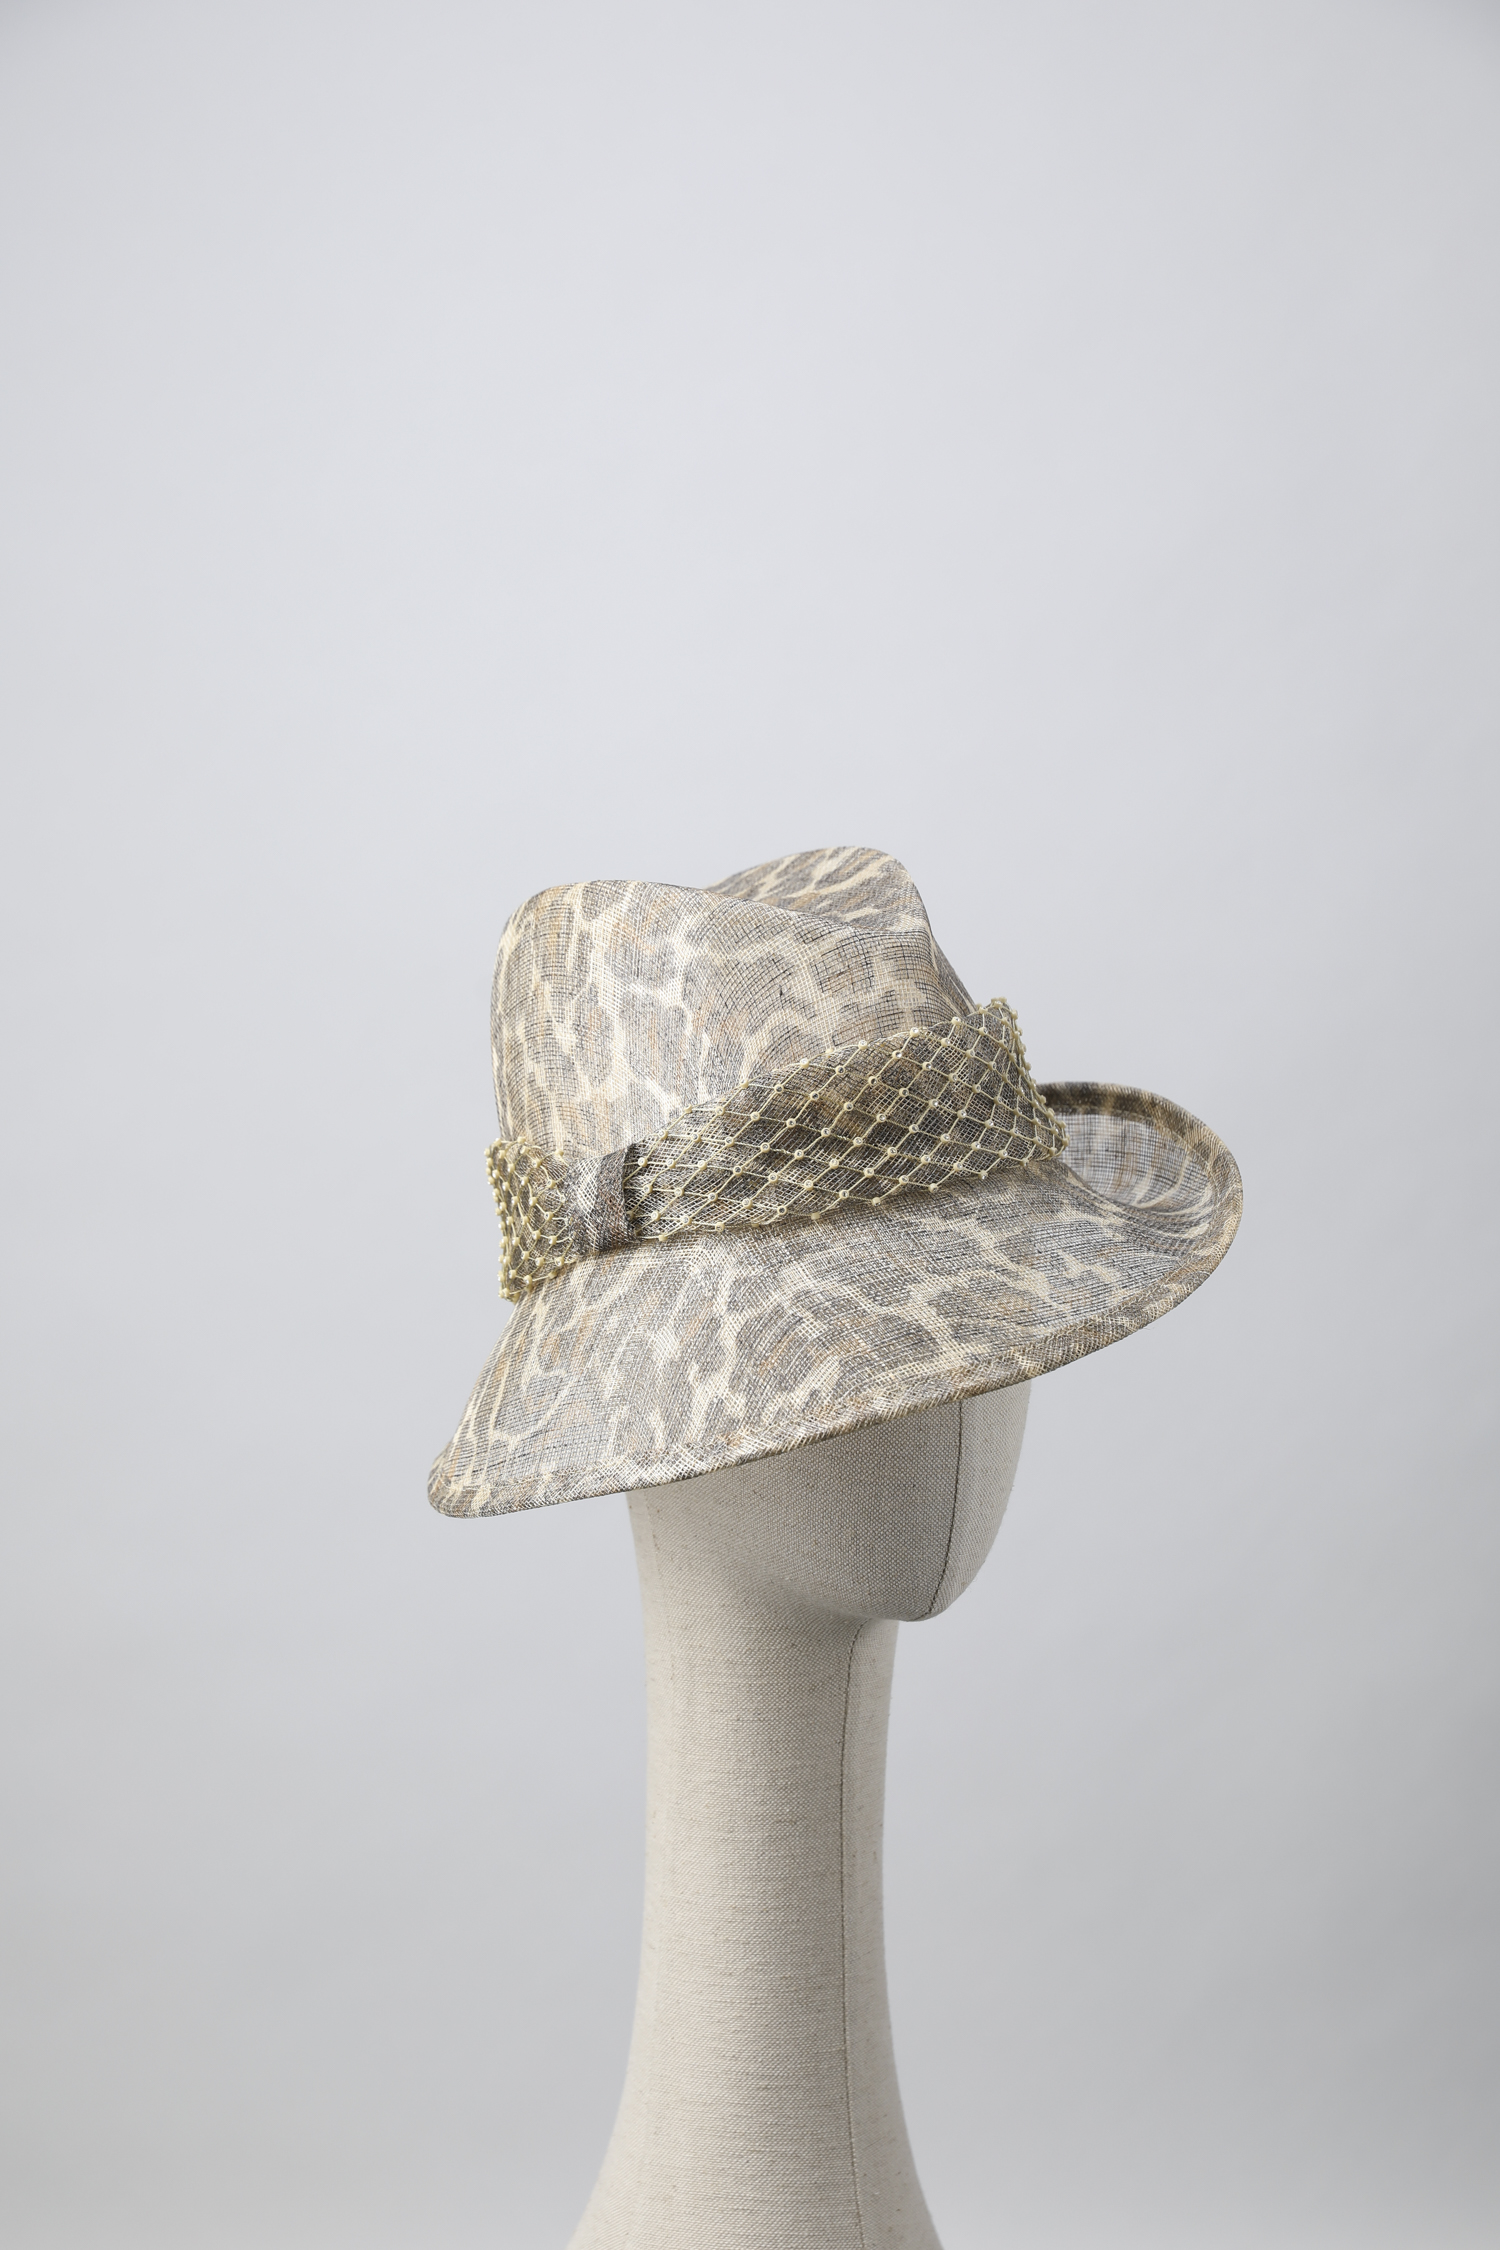 Copy of Jaycow Millinery by Jay Cheng Sample Stock 2019 (30).jpg